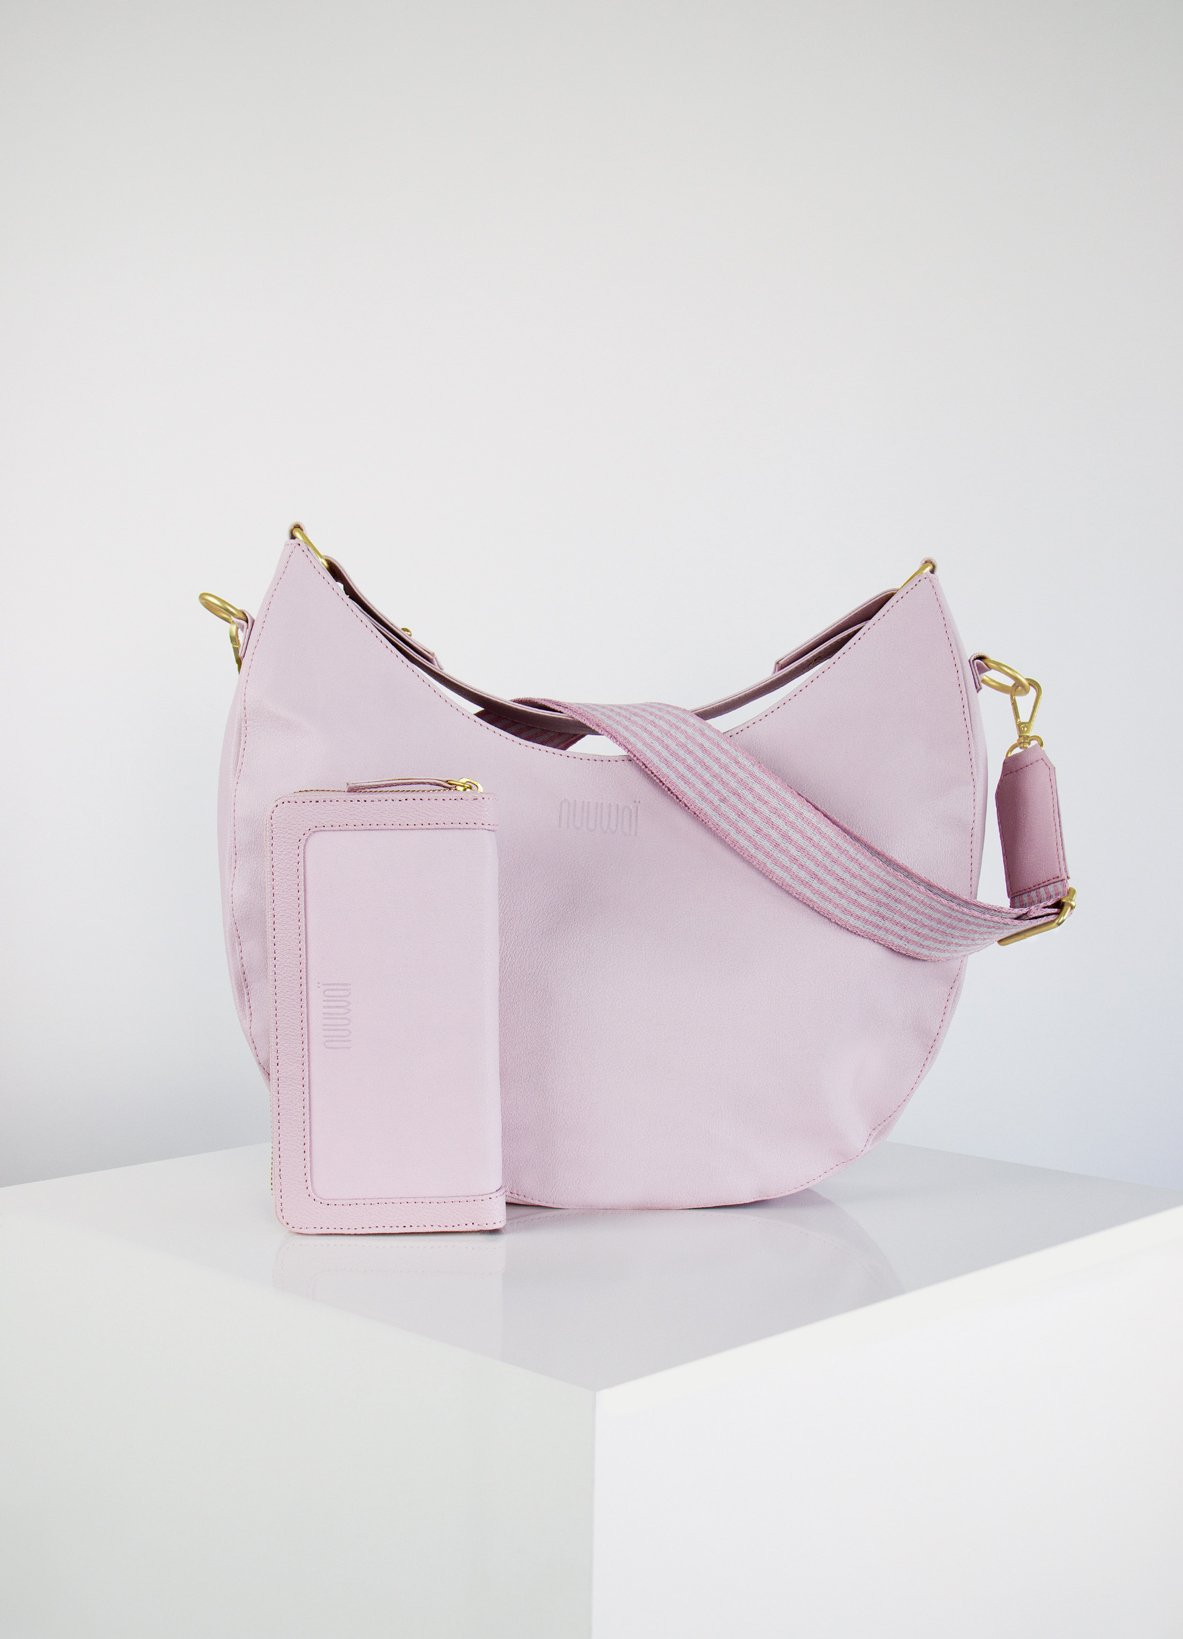 nuuwaï pale blush nuuwaï - Vegan Hobo Bag + Wallet - FRIDA + MADITA Bundle